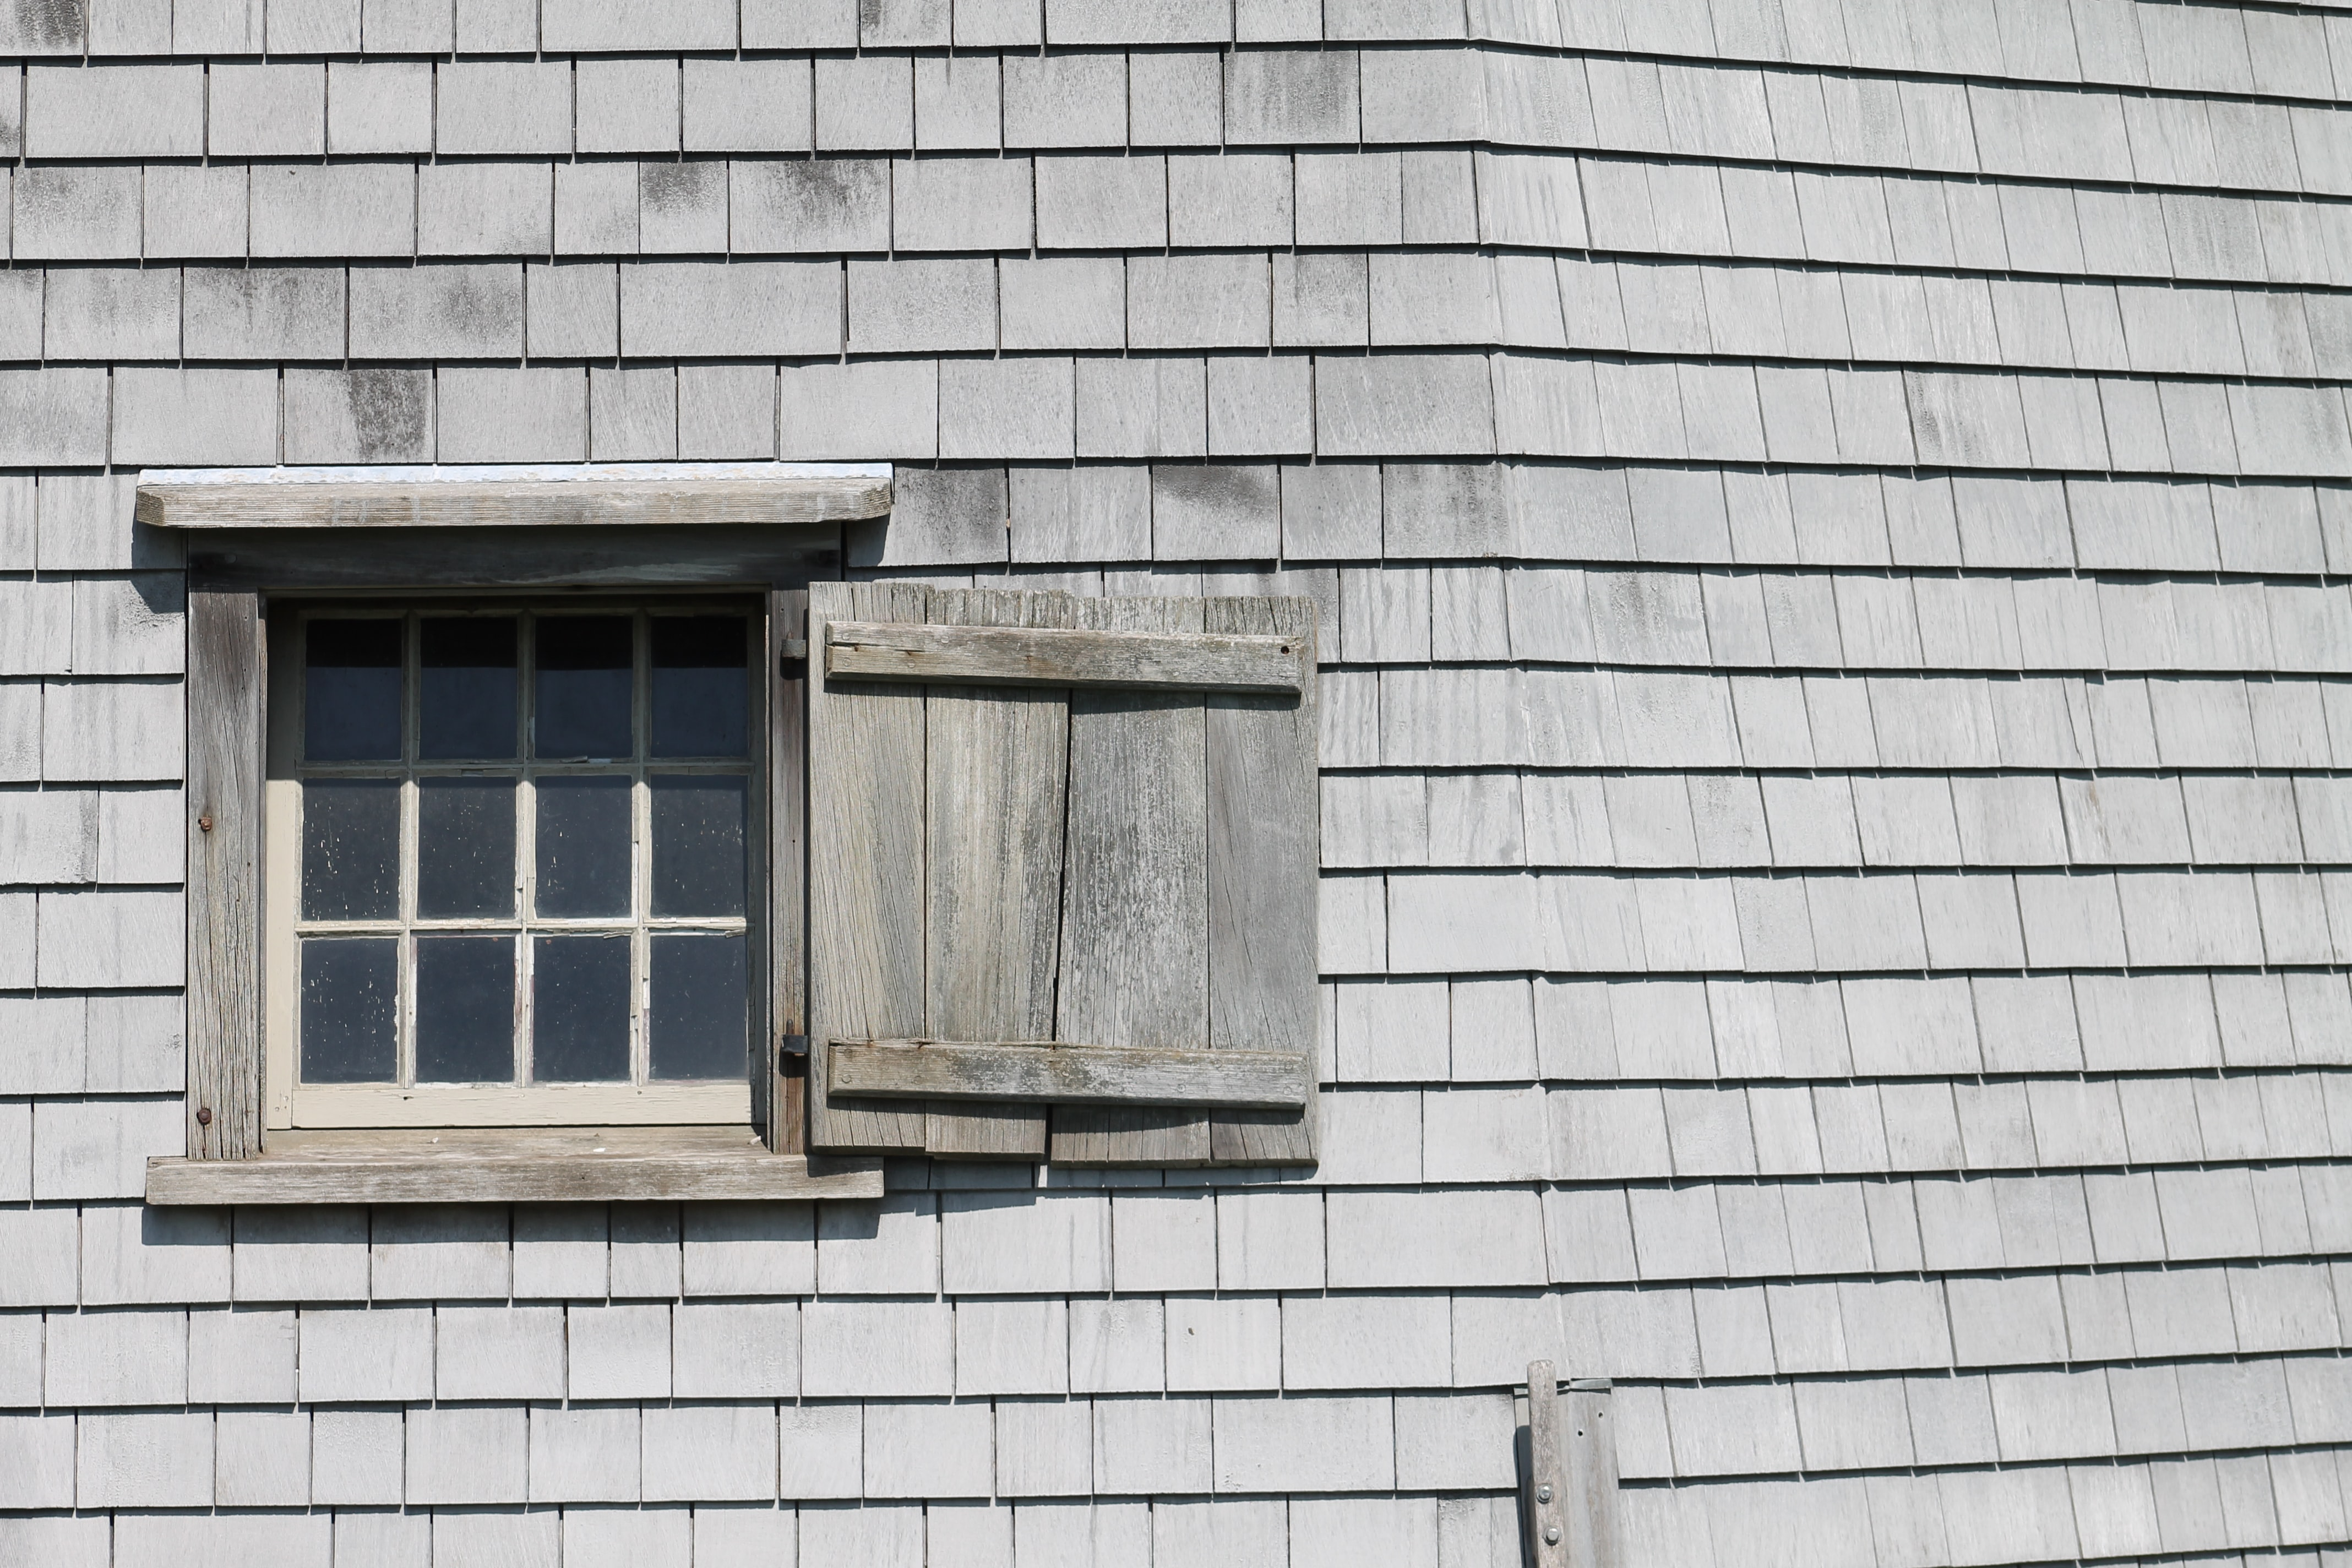 A rustic window with a wooden shutter in a roof